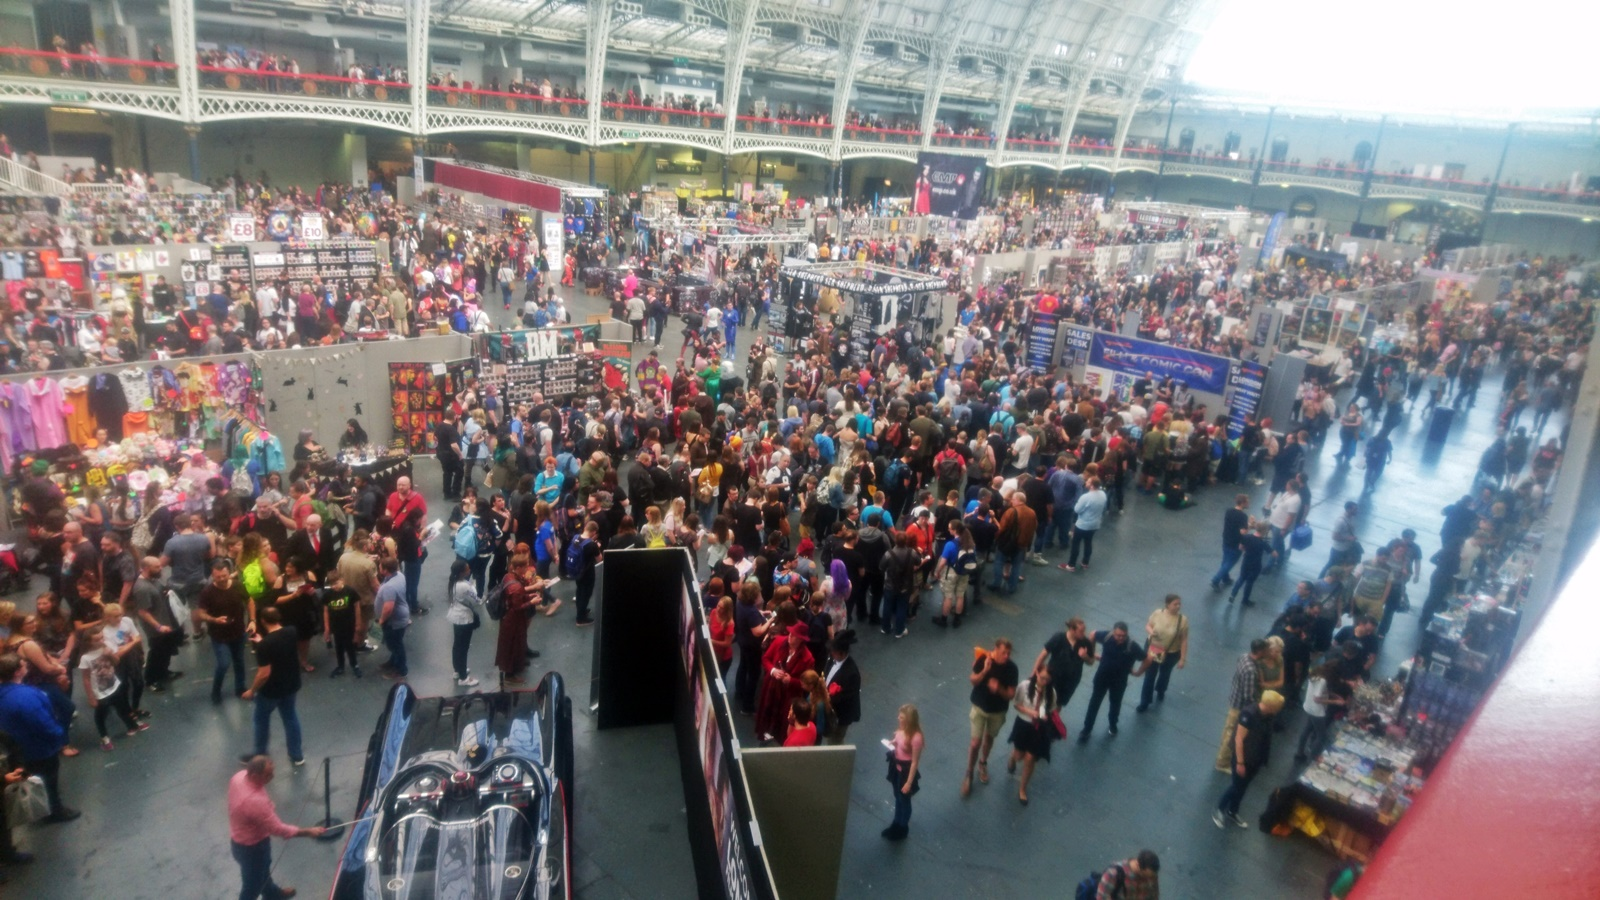 London Film and Comic Con. Photo courtesy of the author.